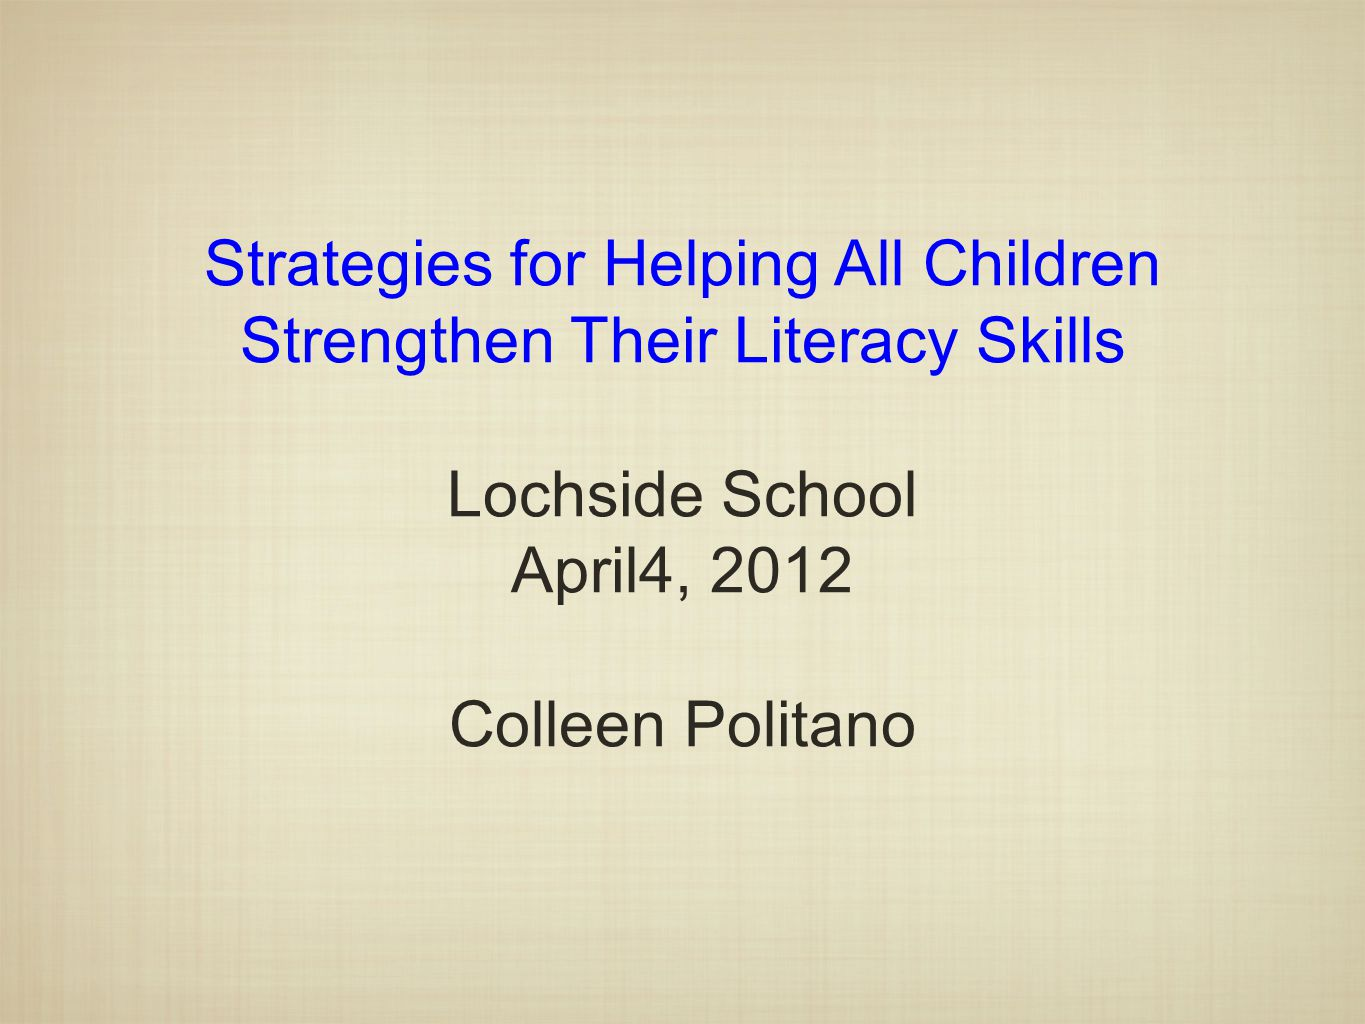 Strategies for Helping All Children Strengthen Their Literacy Skills Lochside School April4, 2012 Colleen Politano